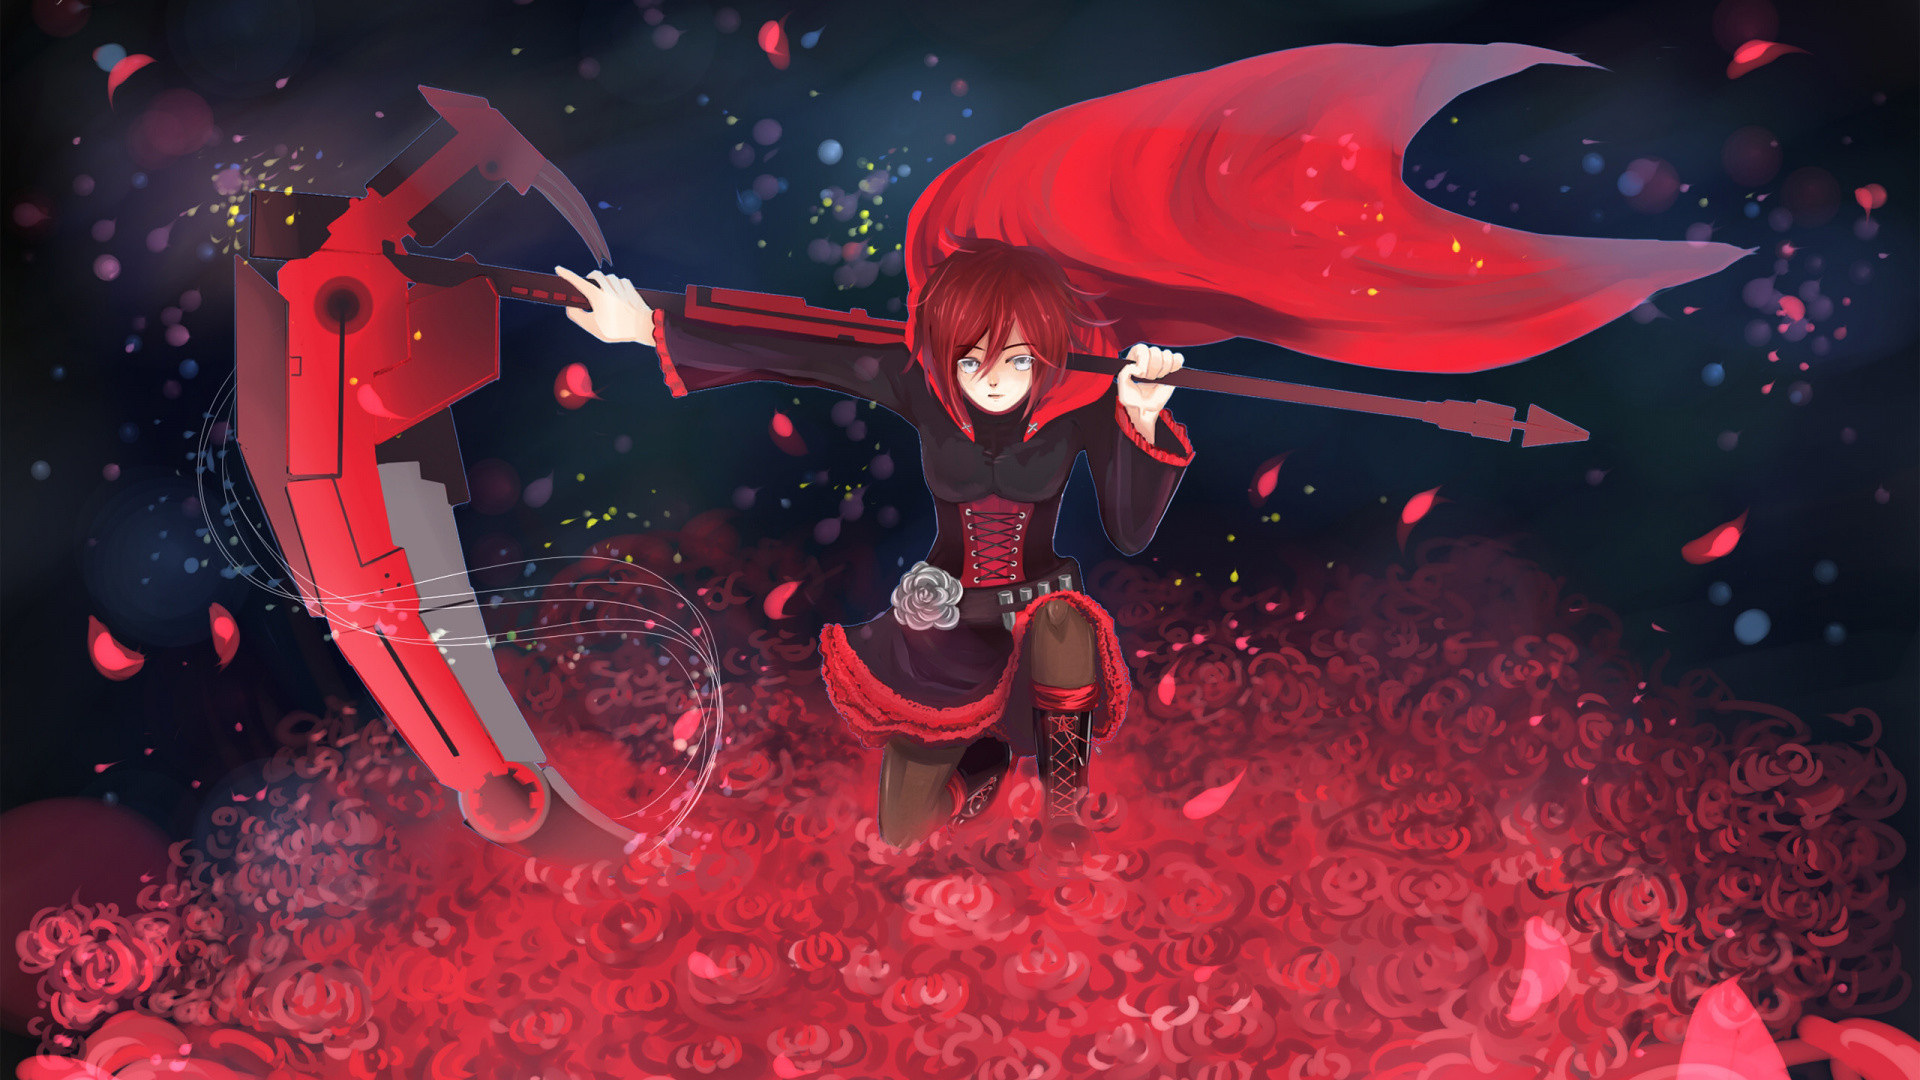 Res: 1920x1080,  wallpaper Sitting, red, anime girl, Ruby Rose, RWBY